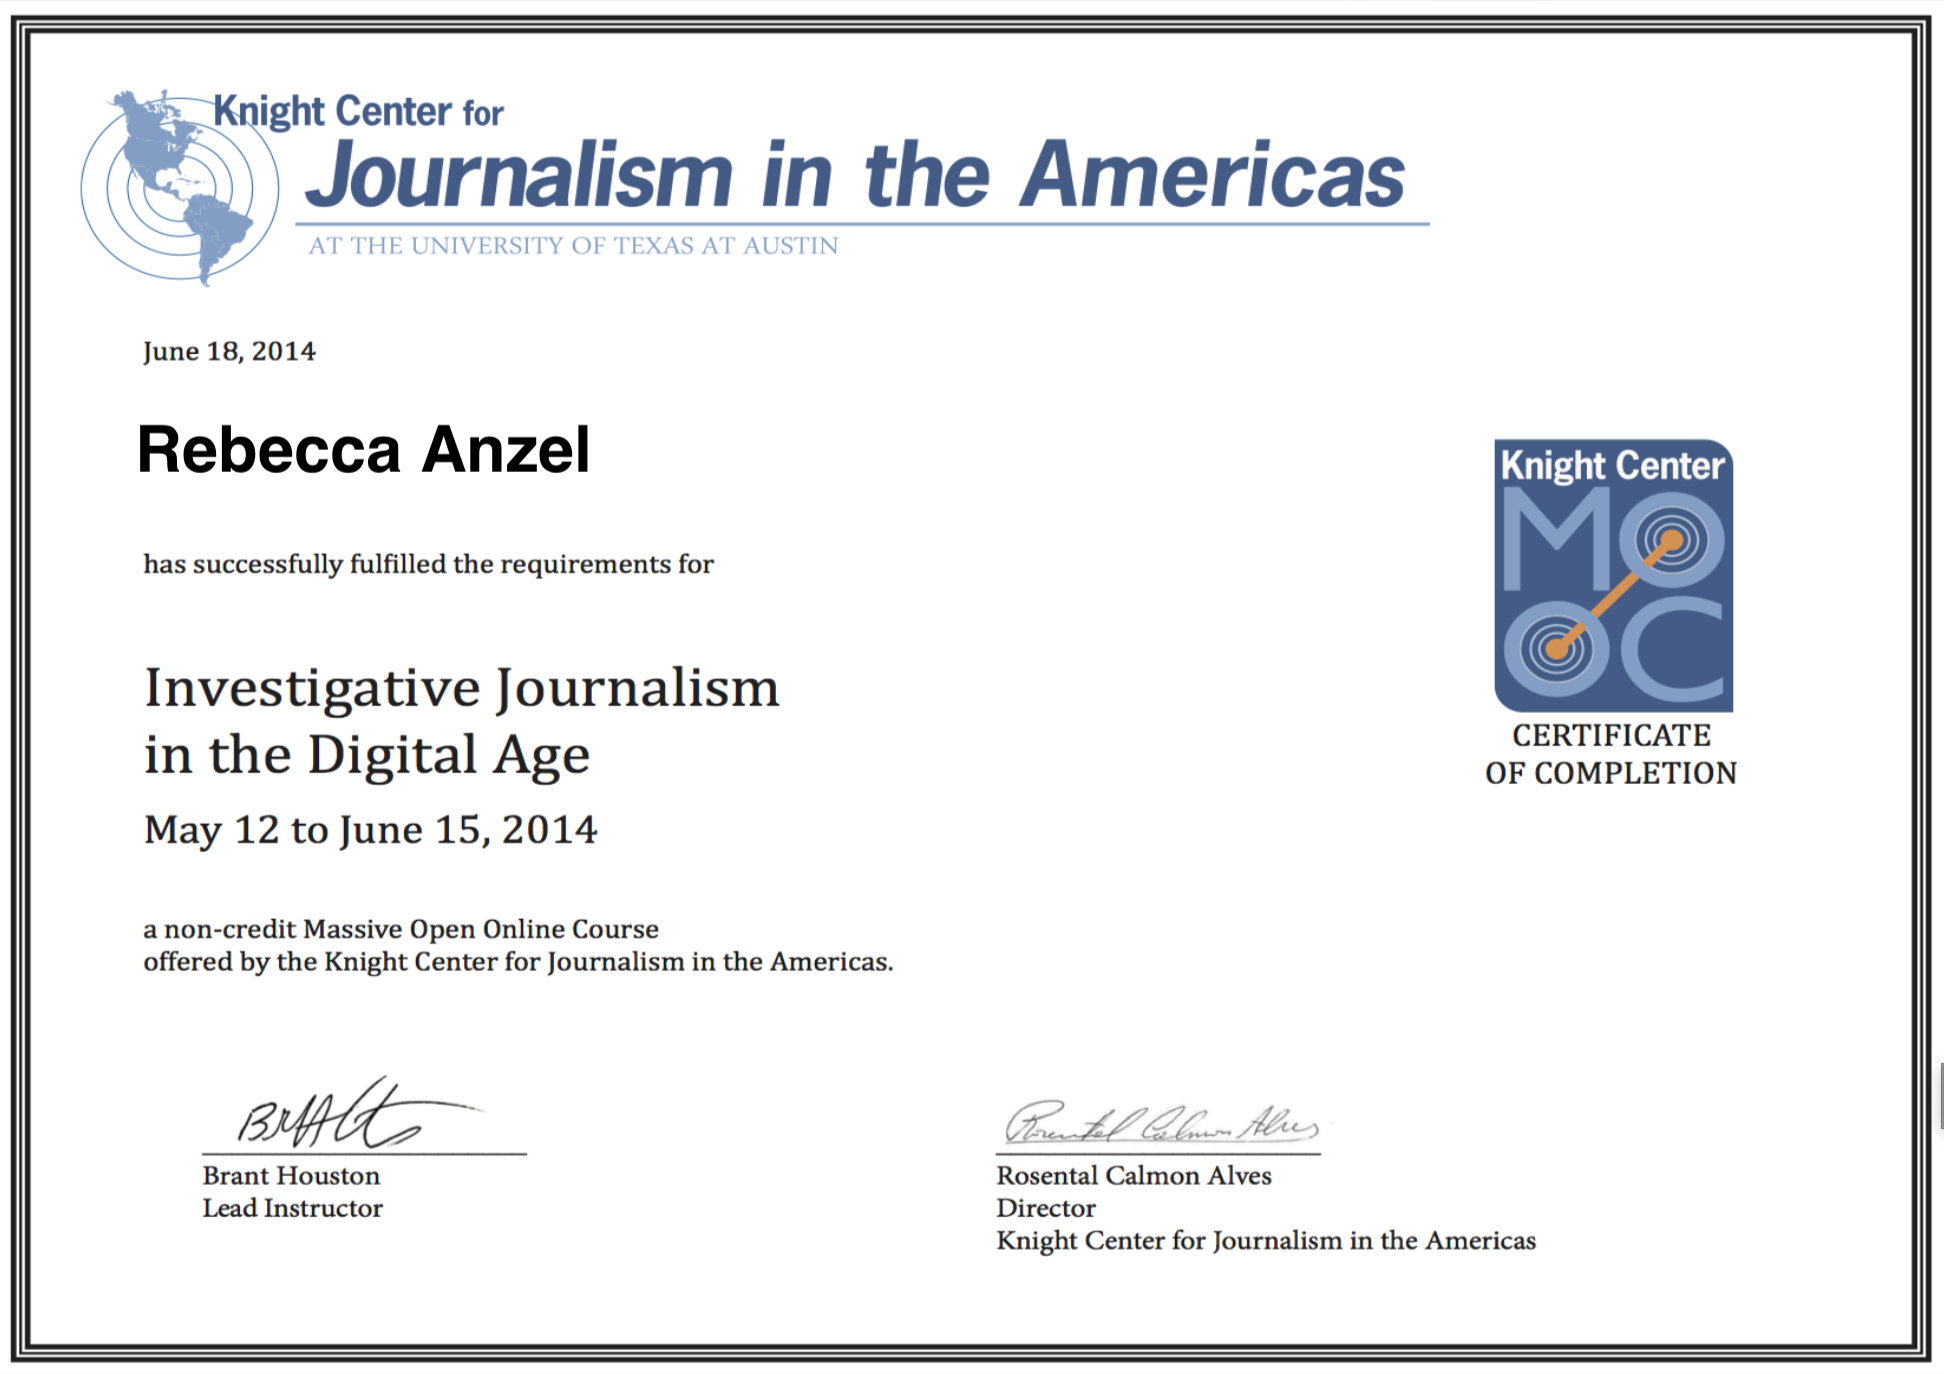 Investigative Journalism in the Digital Age